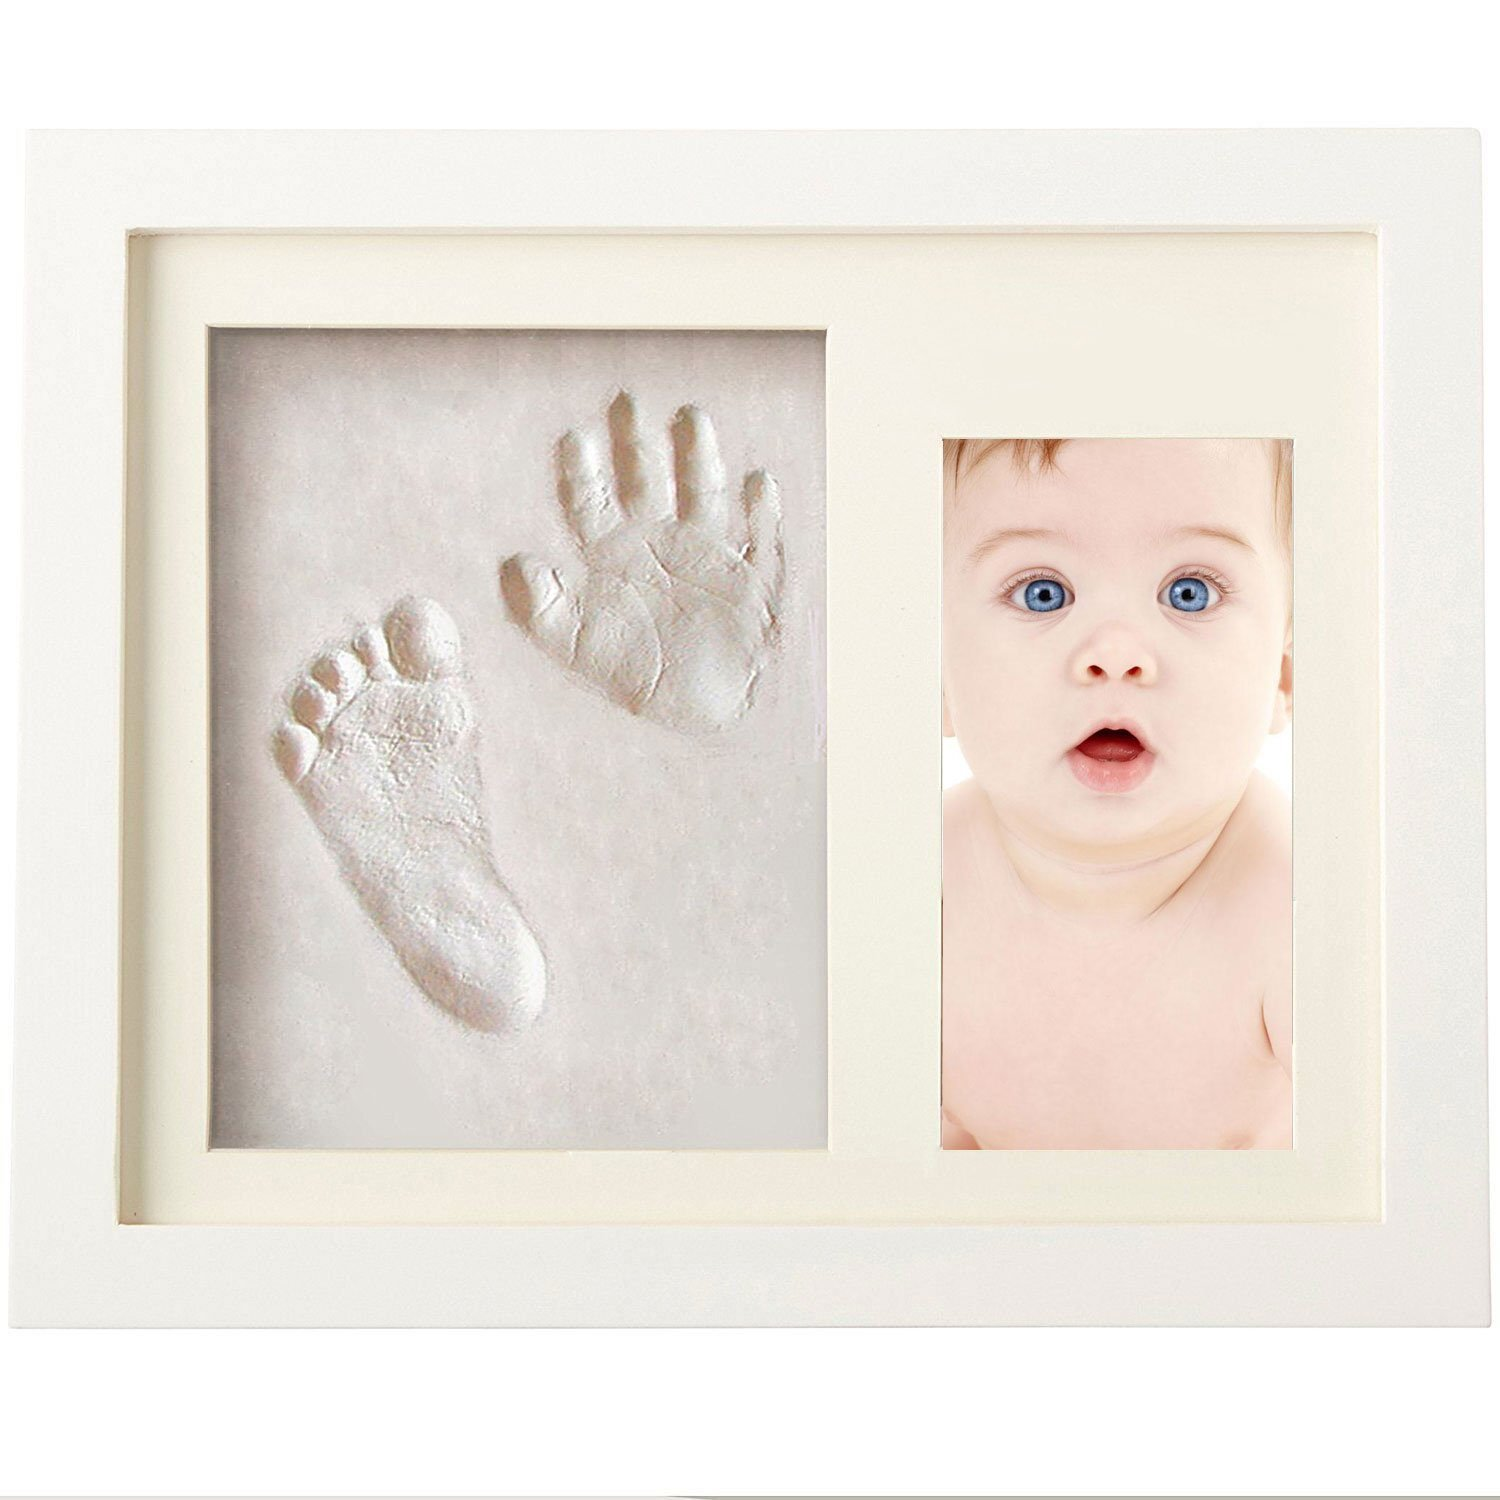 Baby Hand and Footprint Picture Frame Kit - BabyPrints Photo Frames, Safe Clay & Wood Frames, Newborn Baby Gifts Junxave